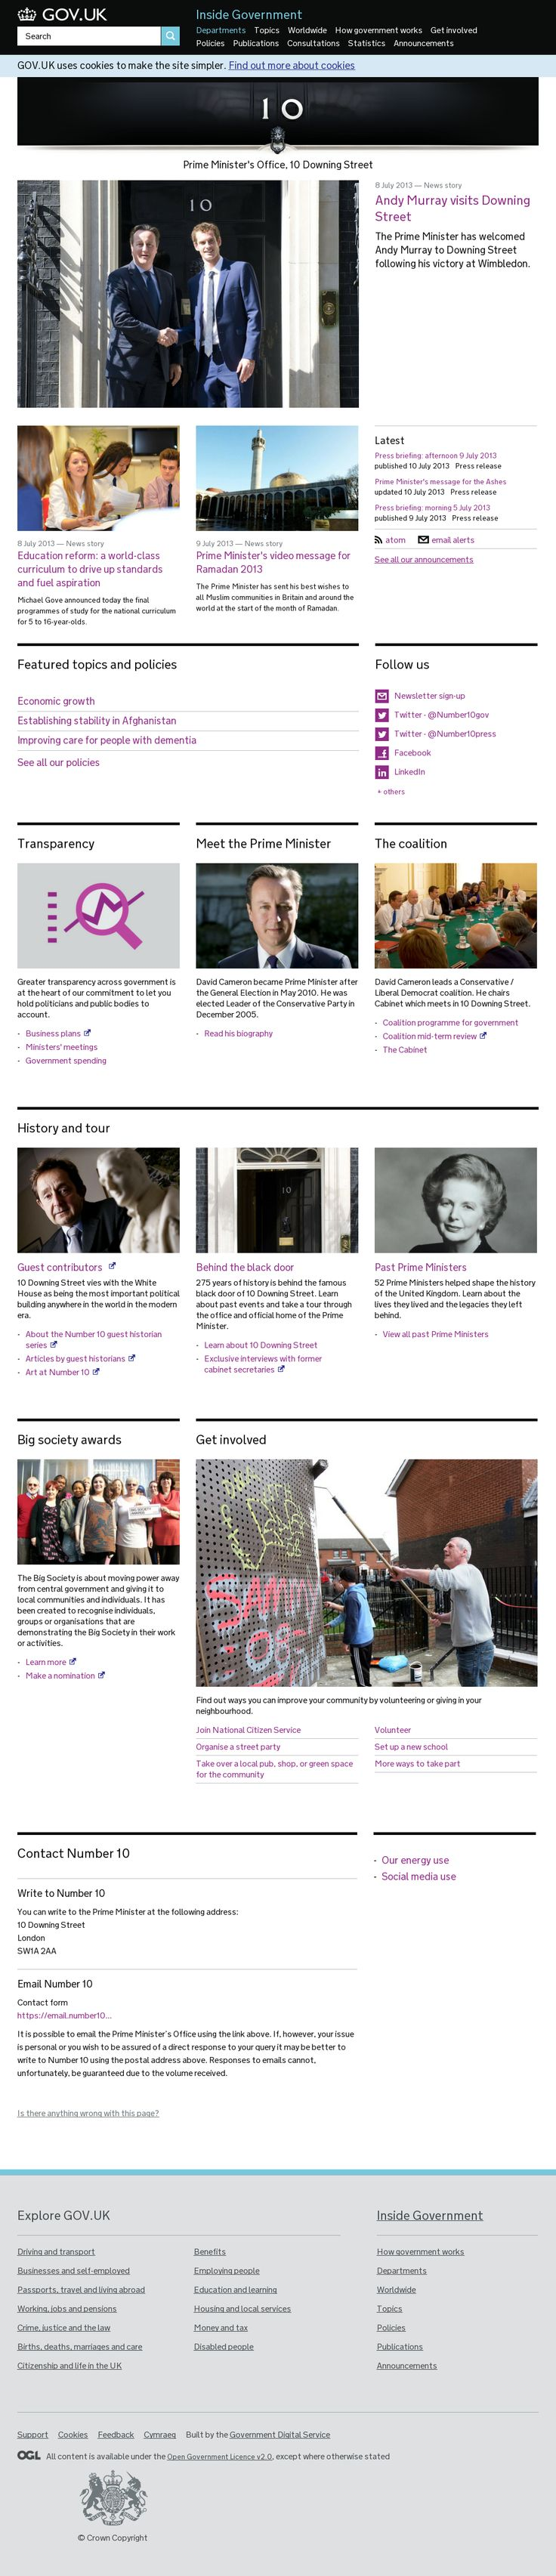 Website 'https://www.gov.uk/government/organisations/prime-ministers-office-10-downing-street' snapped on Snapito!